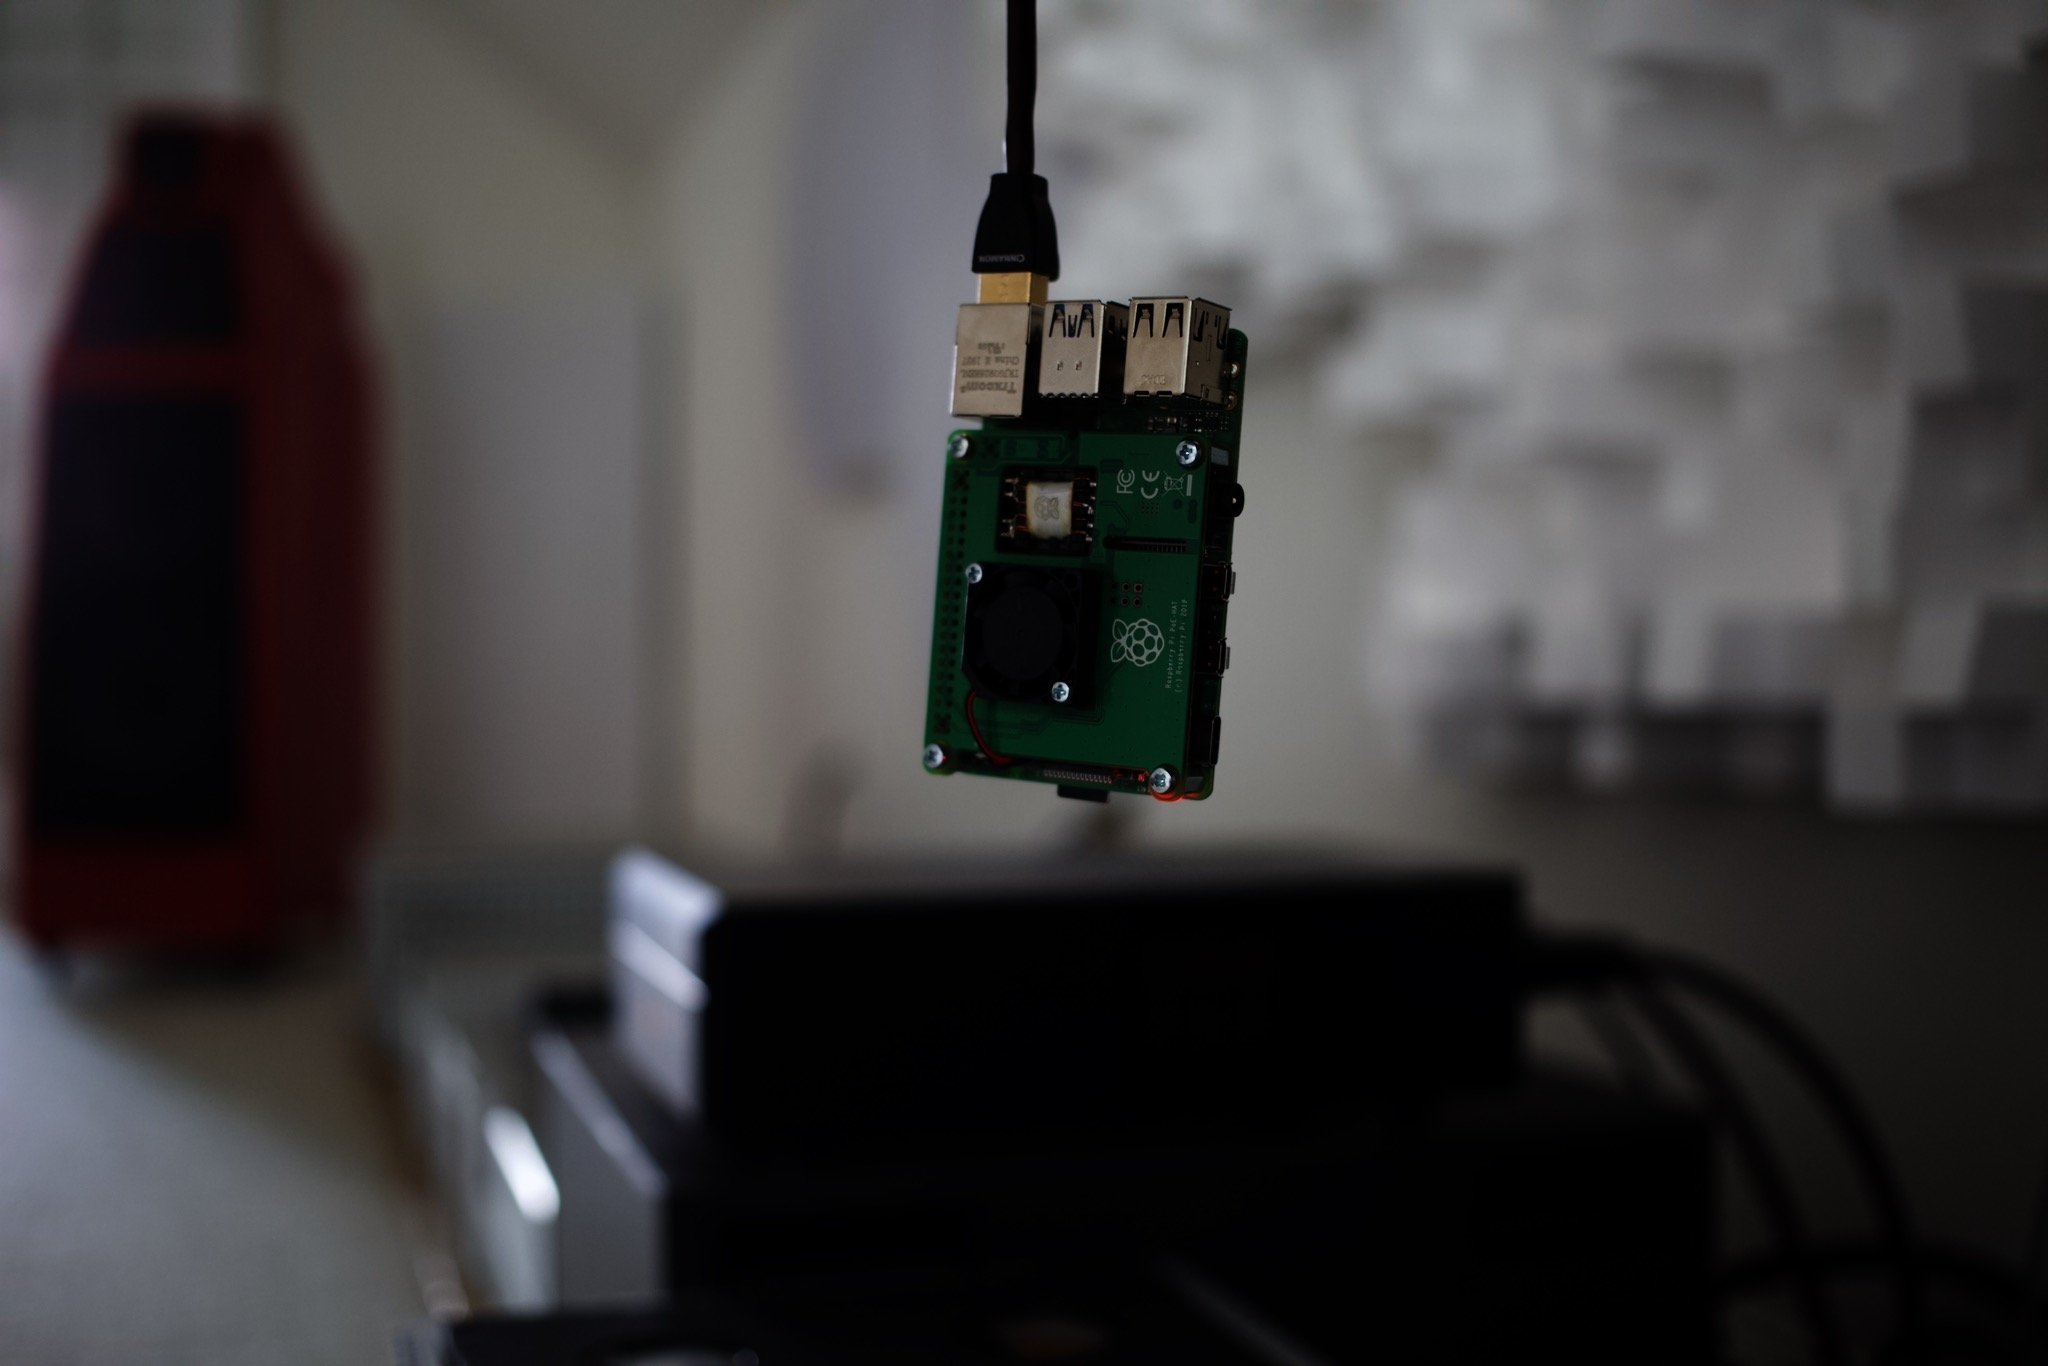 Simple Raspberry Pi Fun Without a Power Supply